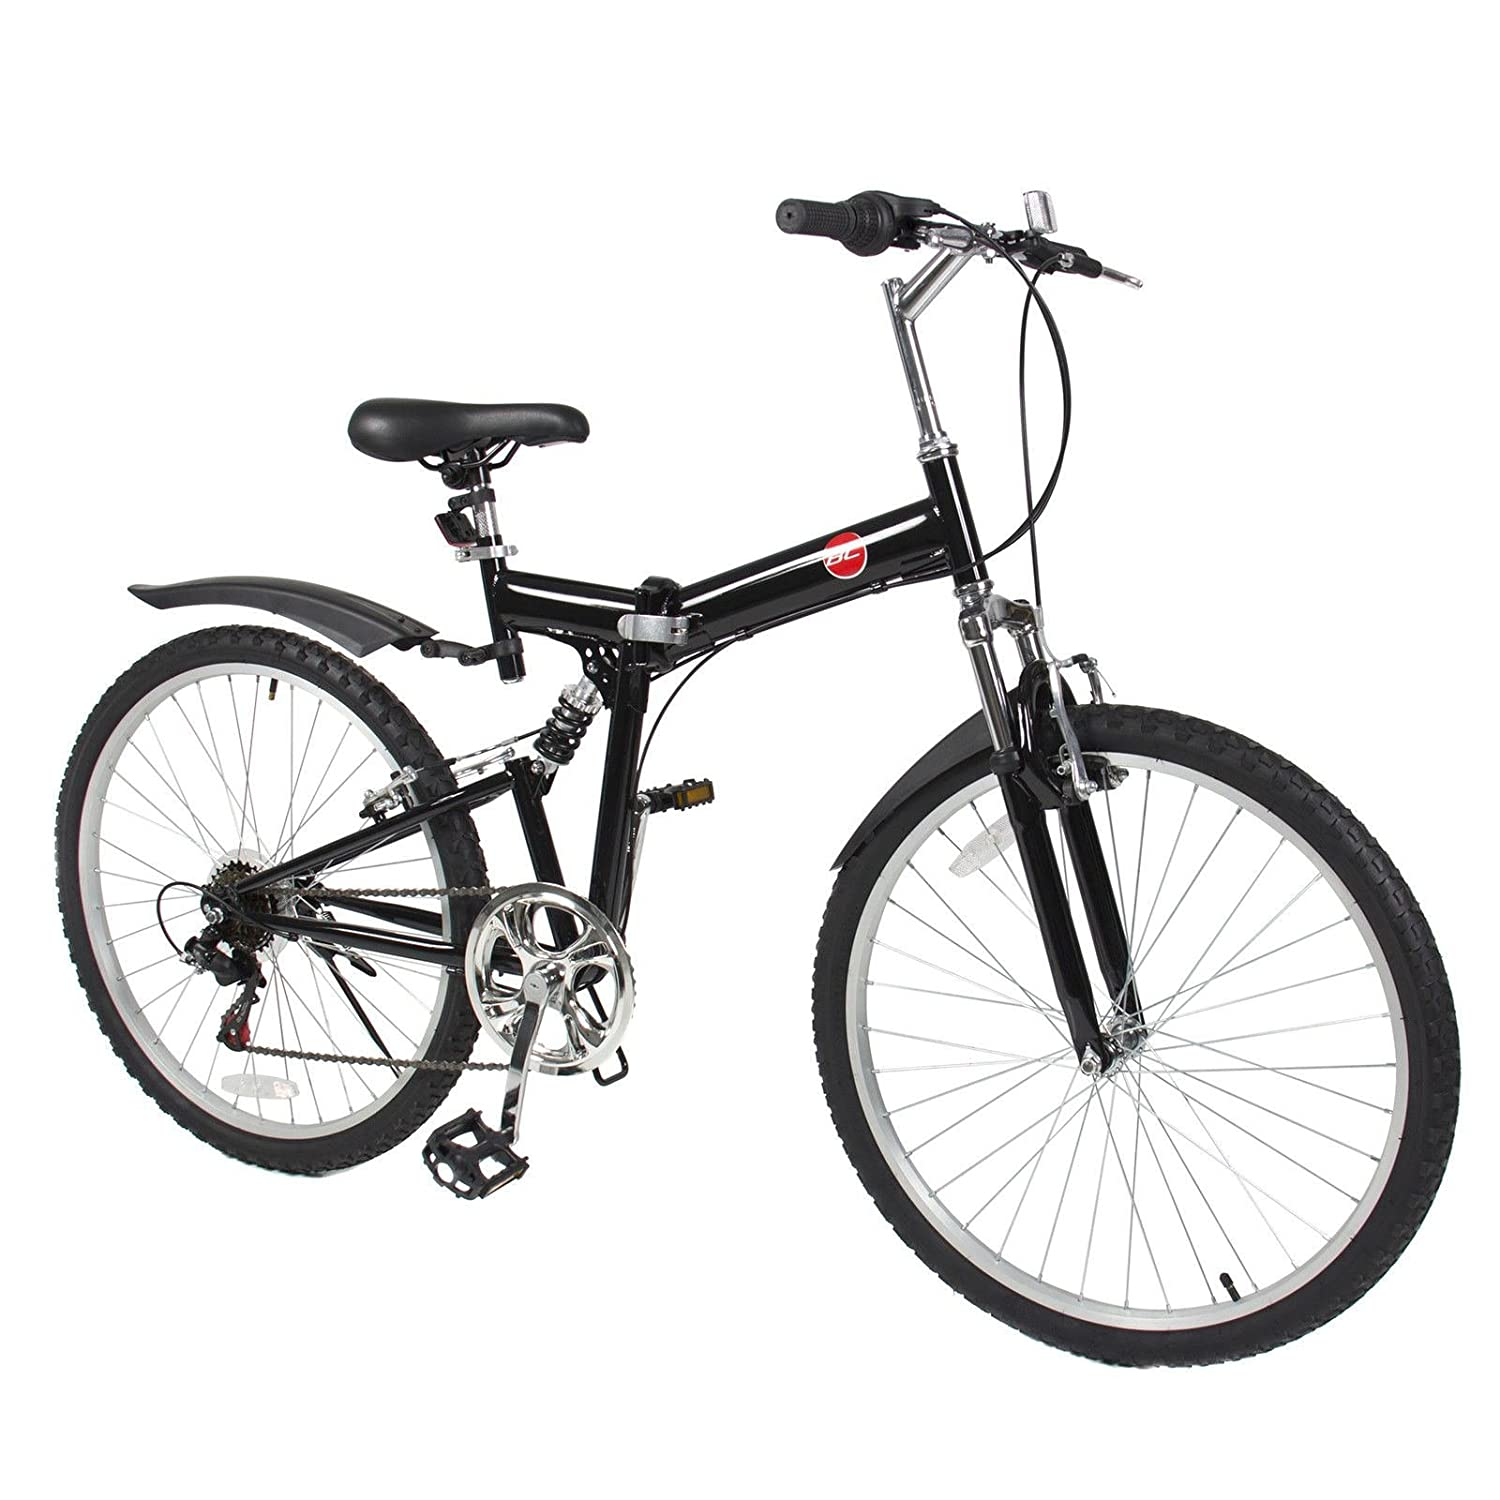 New 26 Folding Mountain Bike Foldable Bicycle 6 Sp